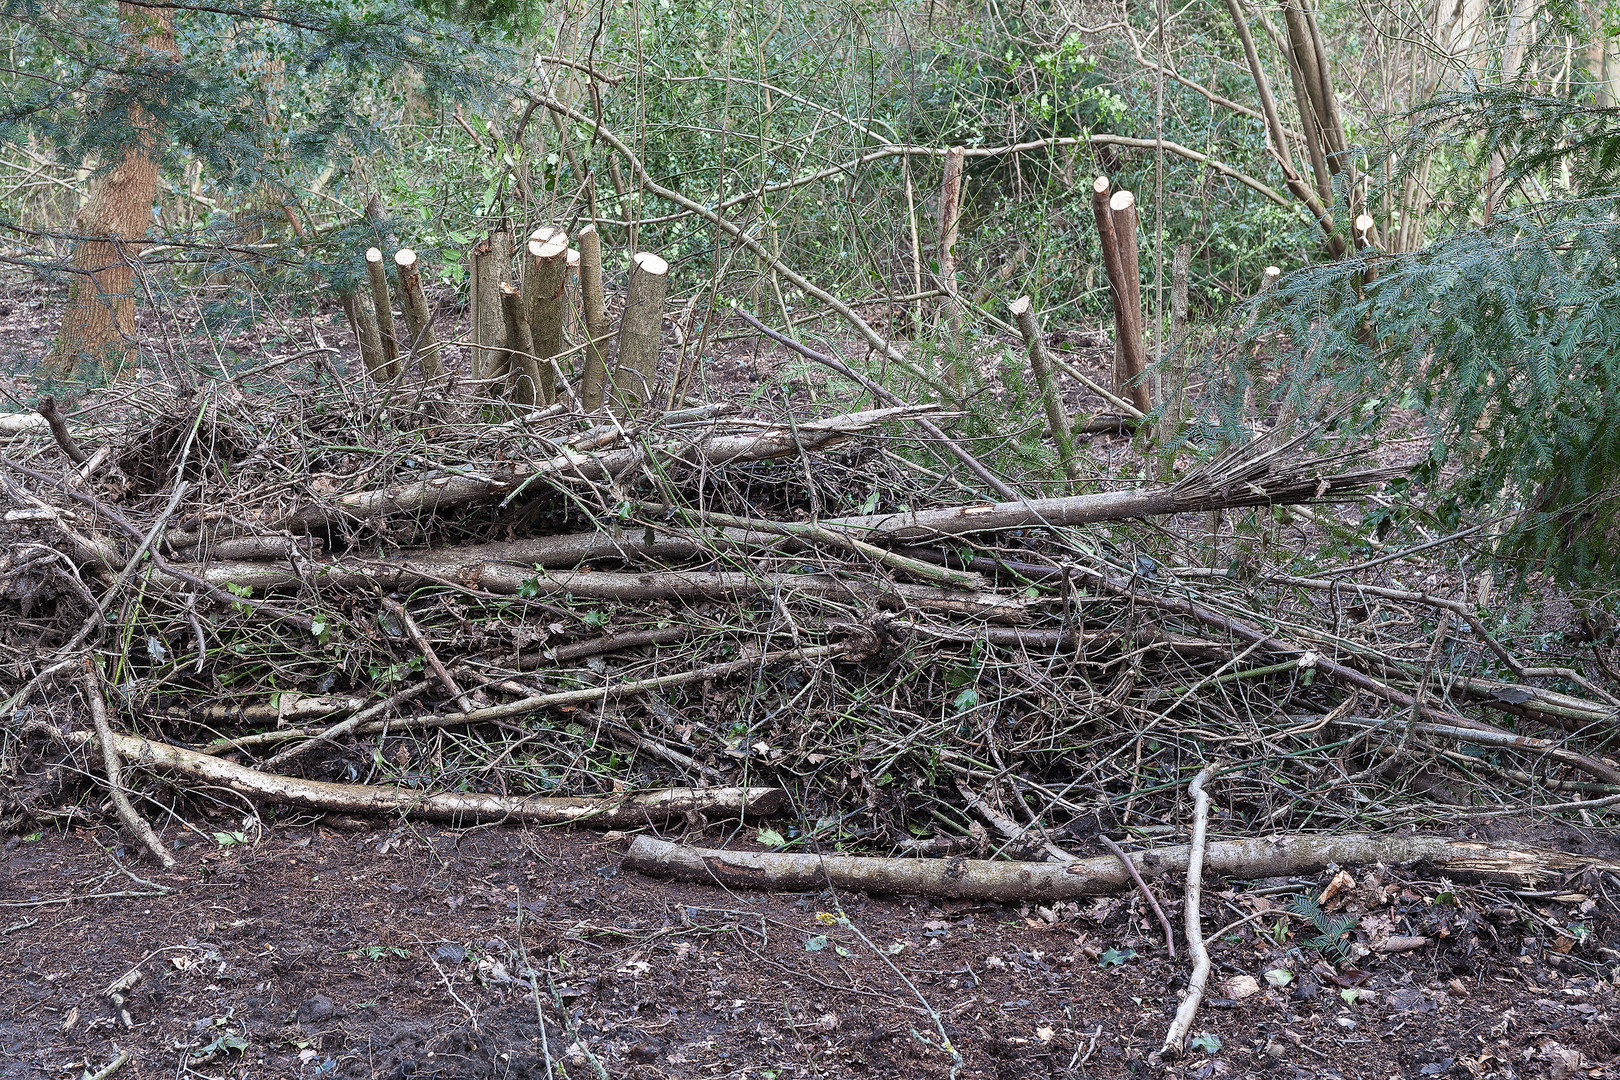 Dead hedging made from branches and tree stumps, Wimbledon Common, London, England